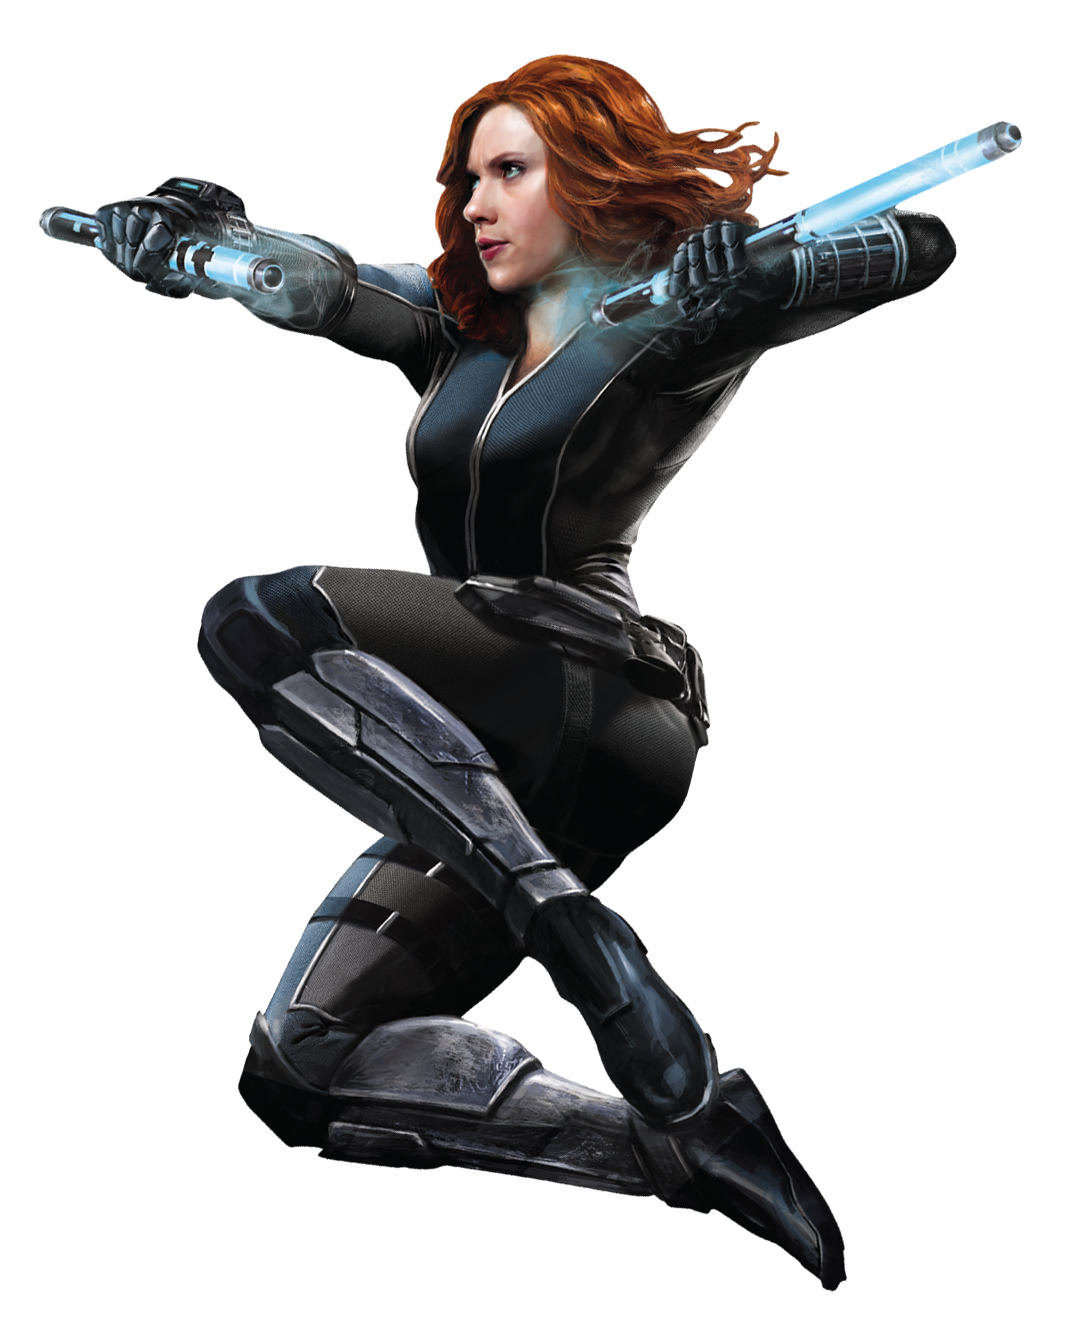 Marvel black widow logo png. From the classified data